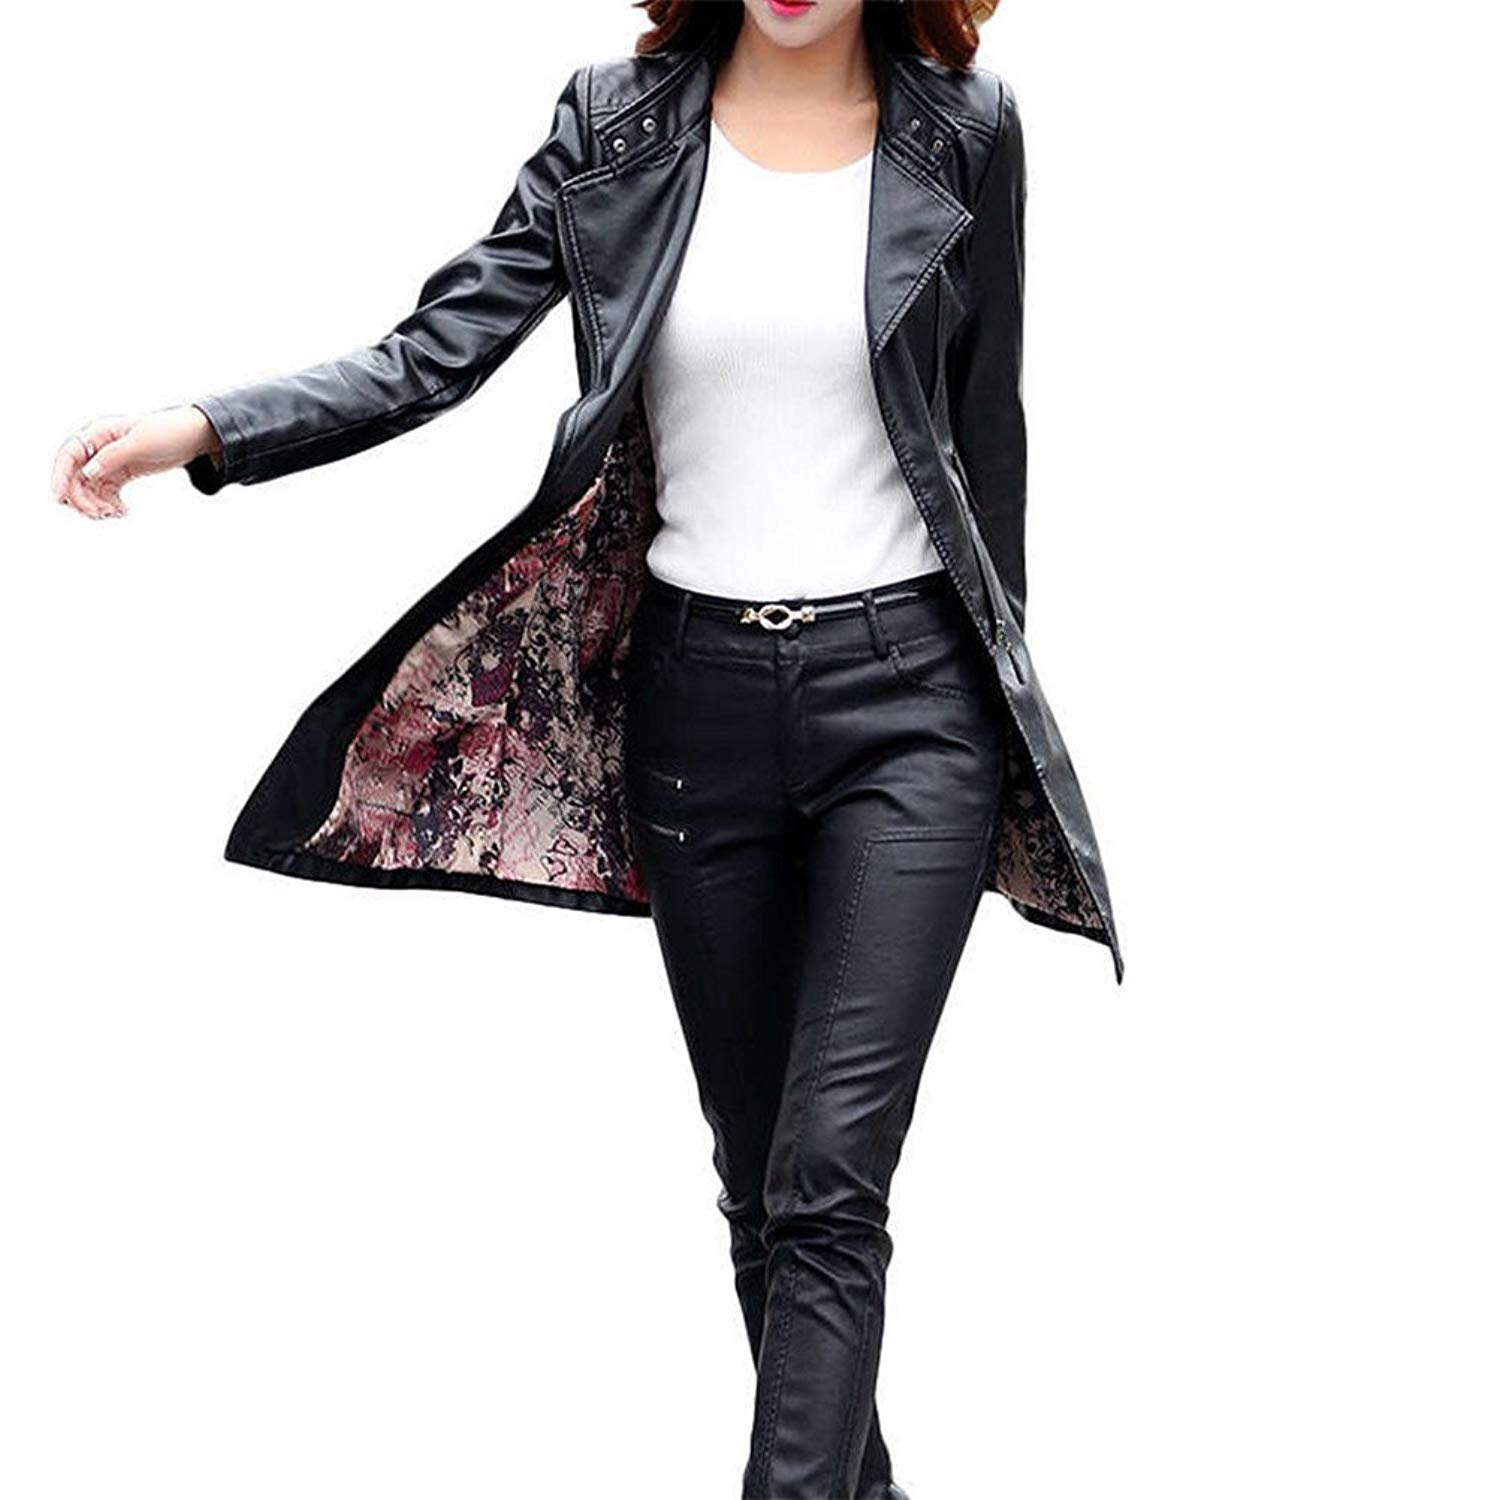 Faux Leather Jacket—— Women's Fashion PU Leather Jacket Suede Faux Leather Trench Overcoat for Women Plus Size Outwear Casual Motorcycle jacket Long Sleeve Lightweight Coat for Winter. (XXL, black)